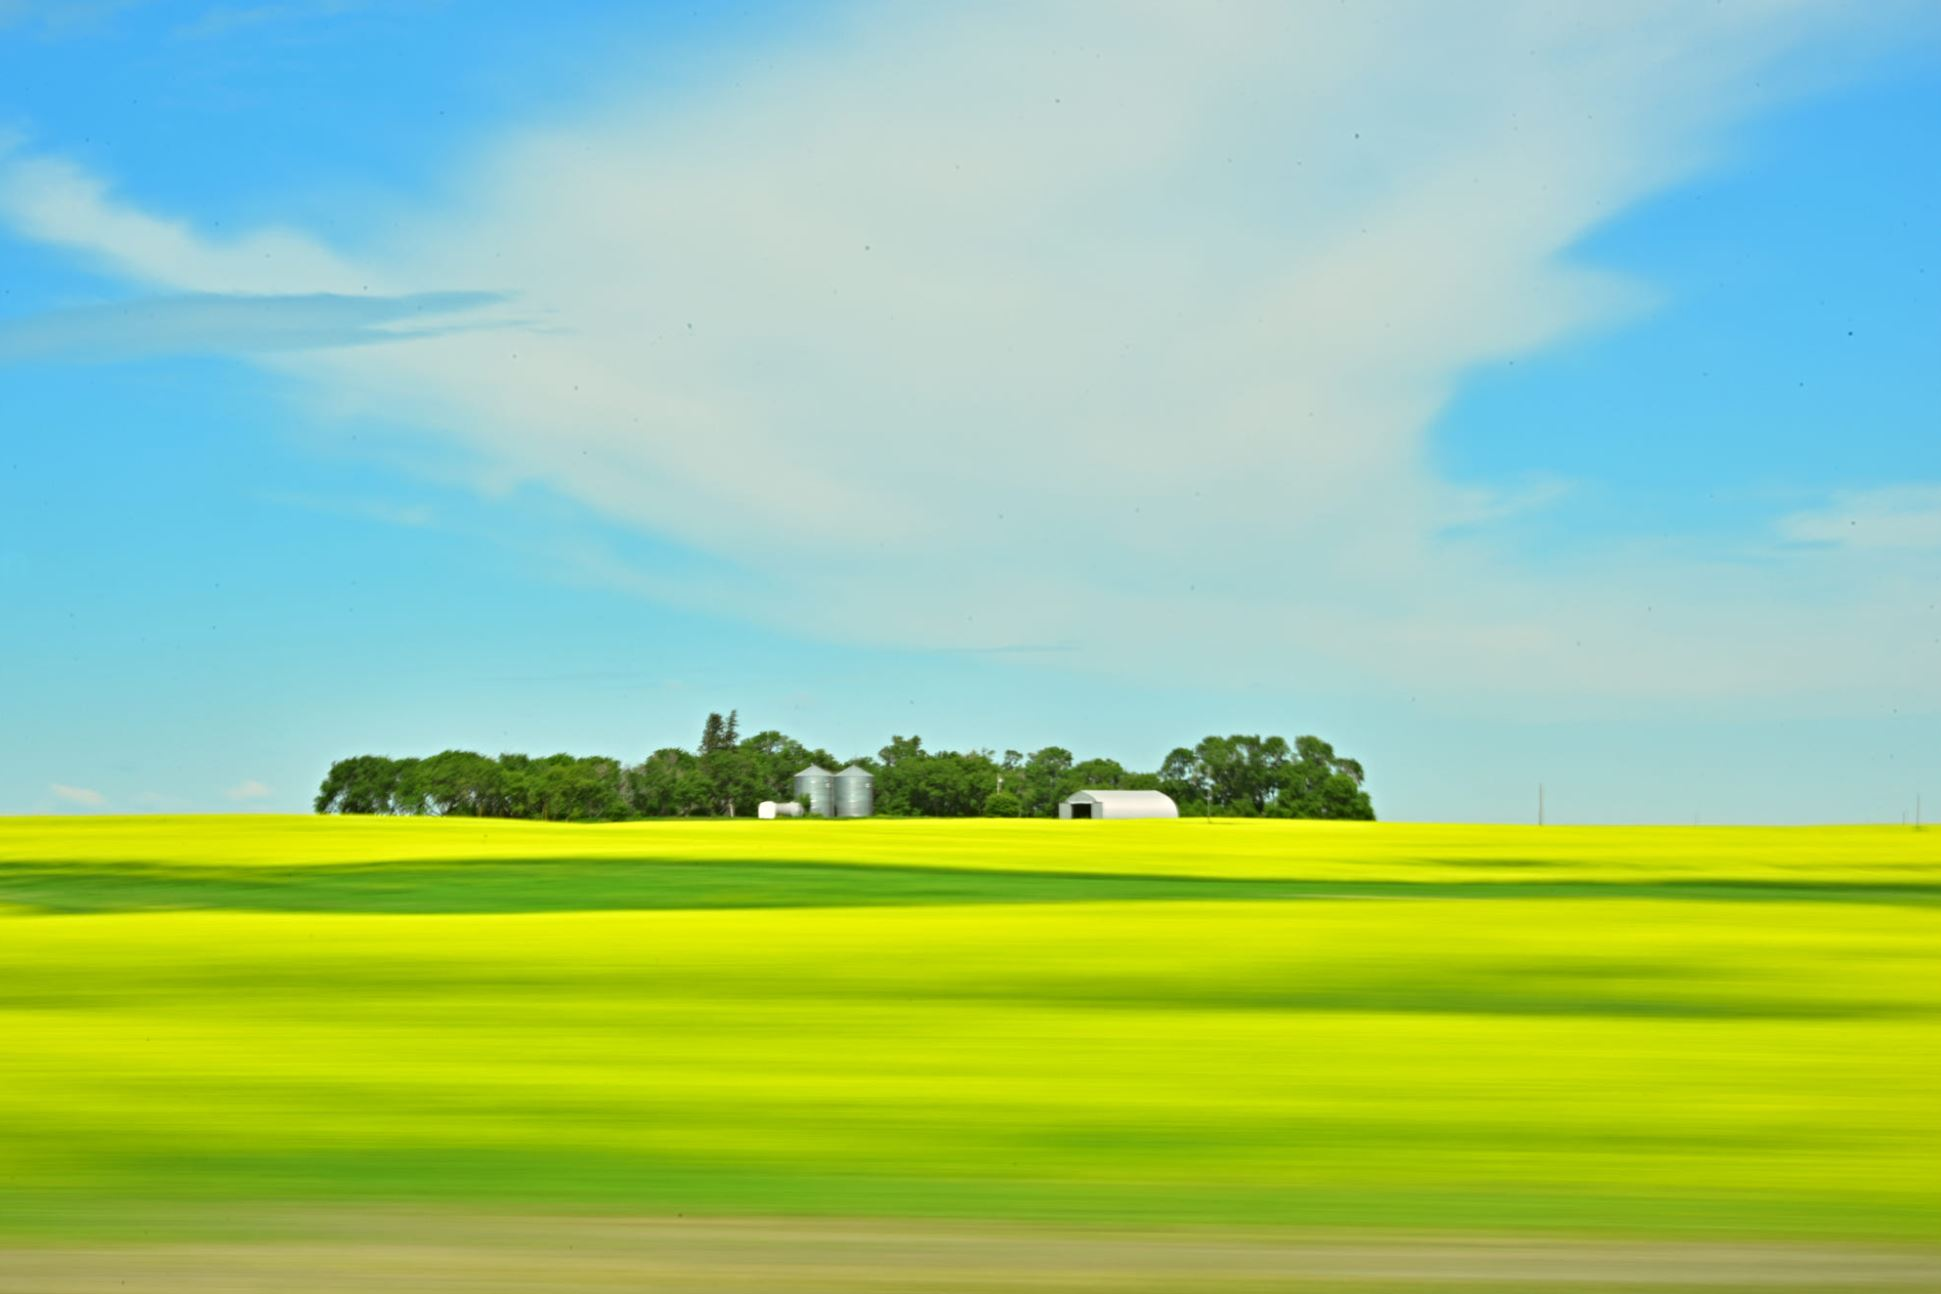 panning shot of canola fields